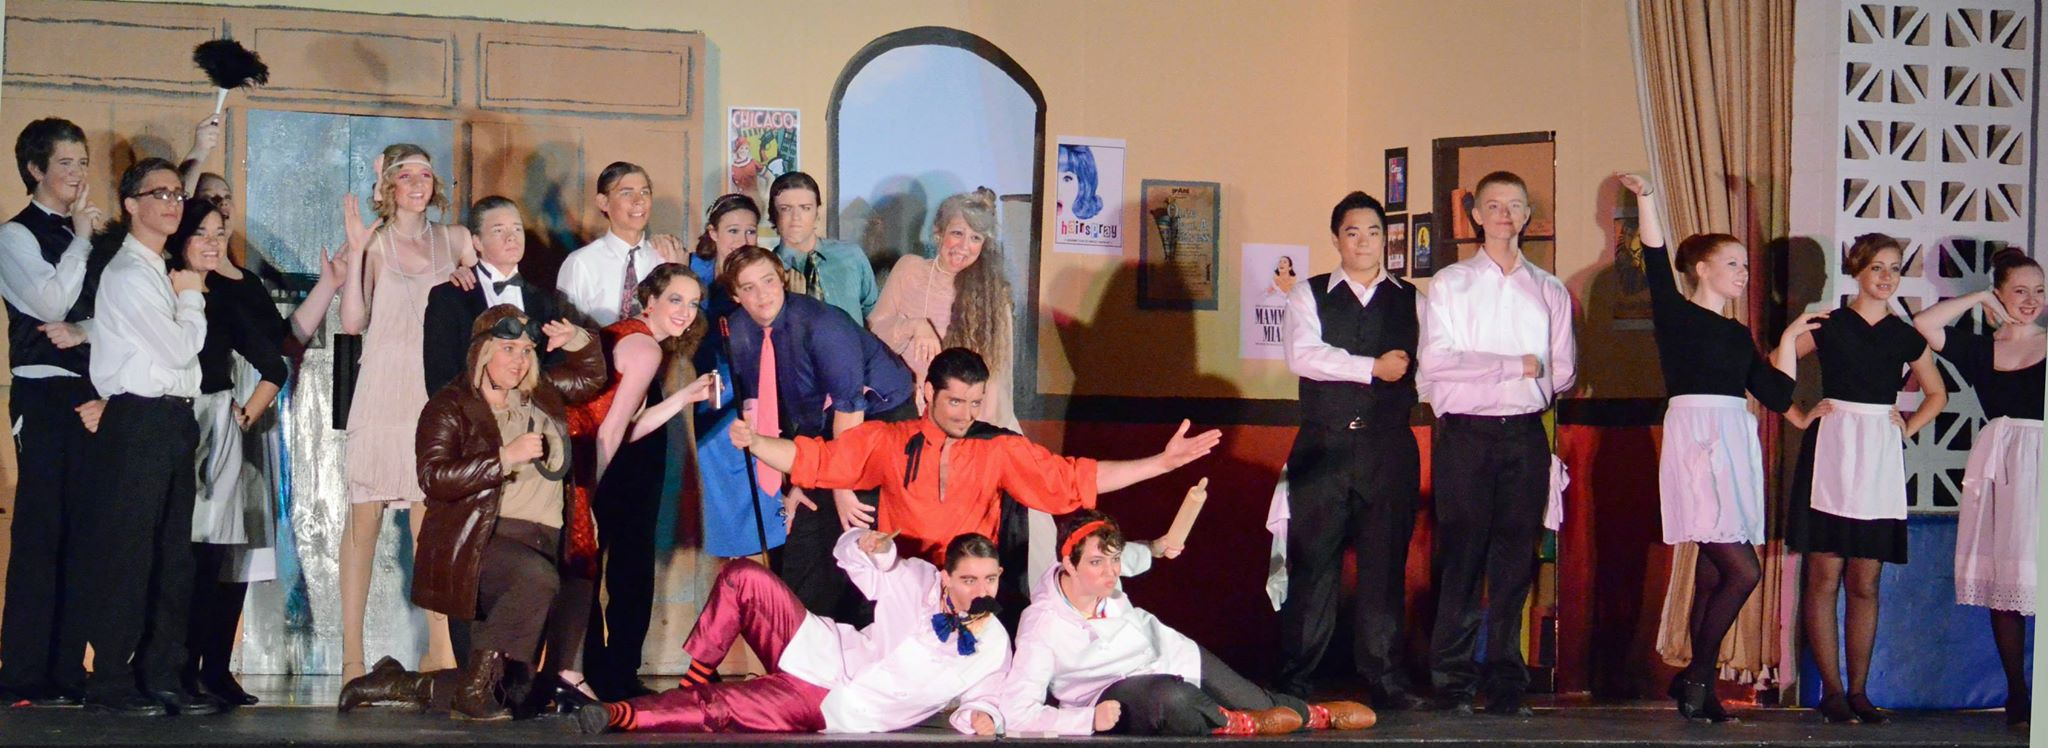 The cast of  the Drowsy Chaperone  Performs 'Fancy Dress'